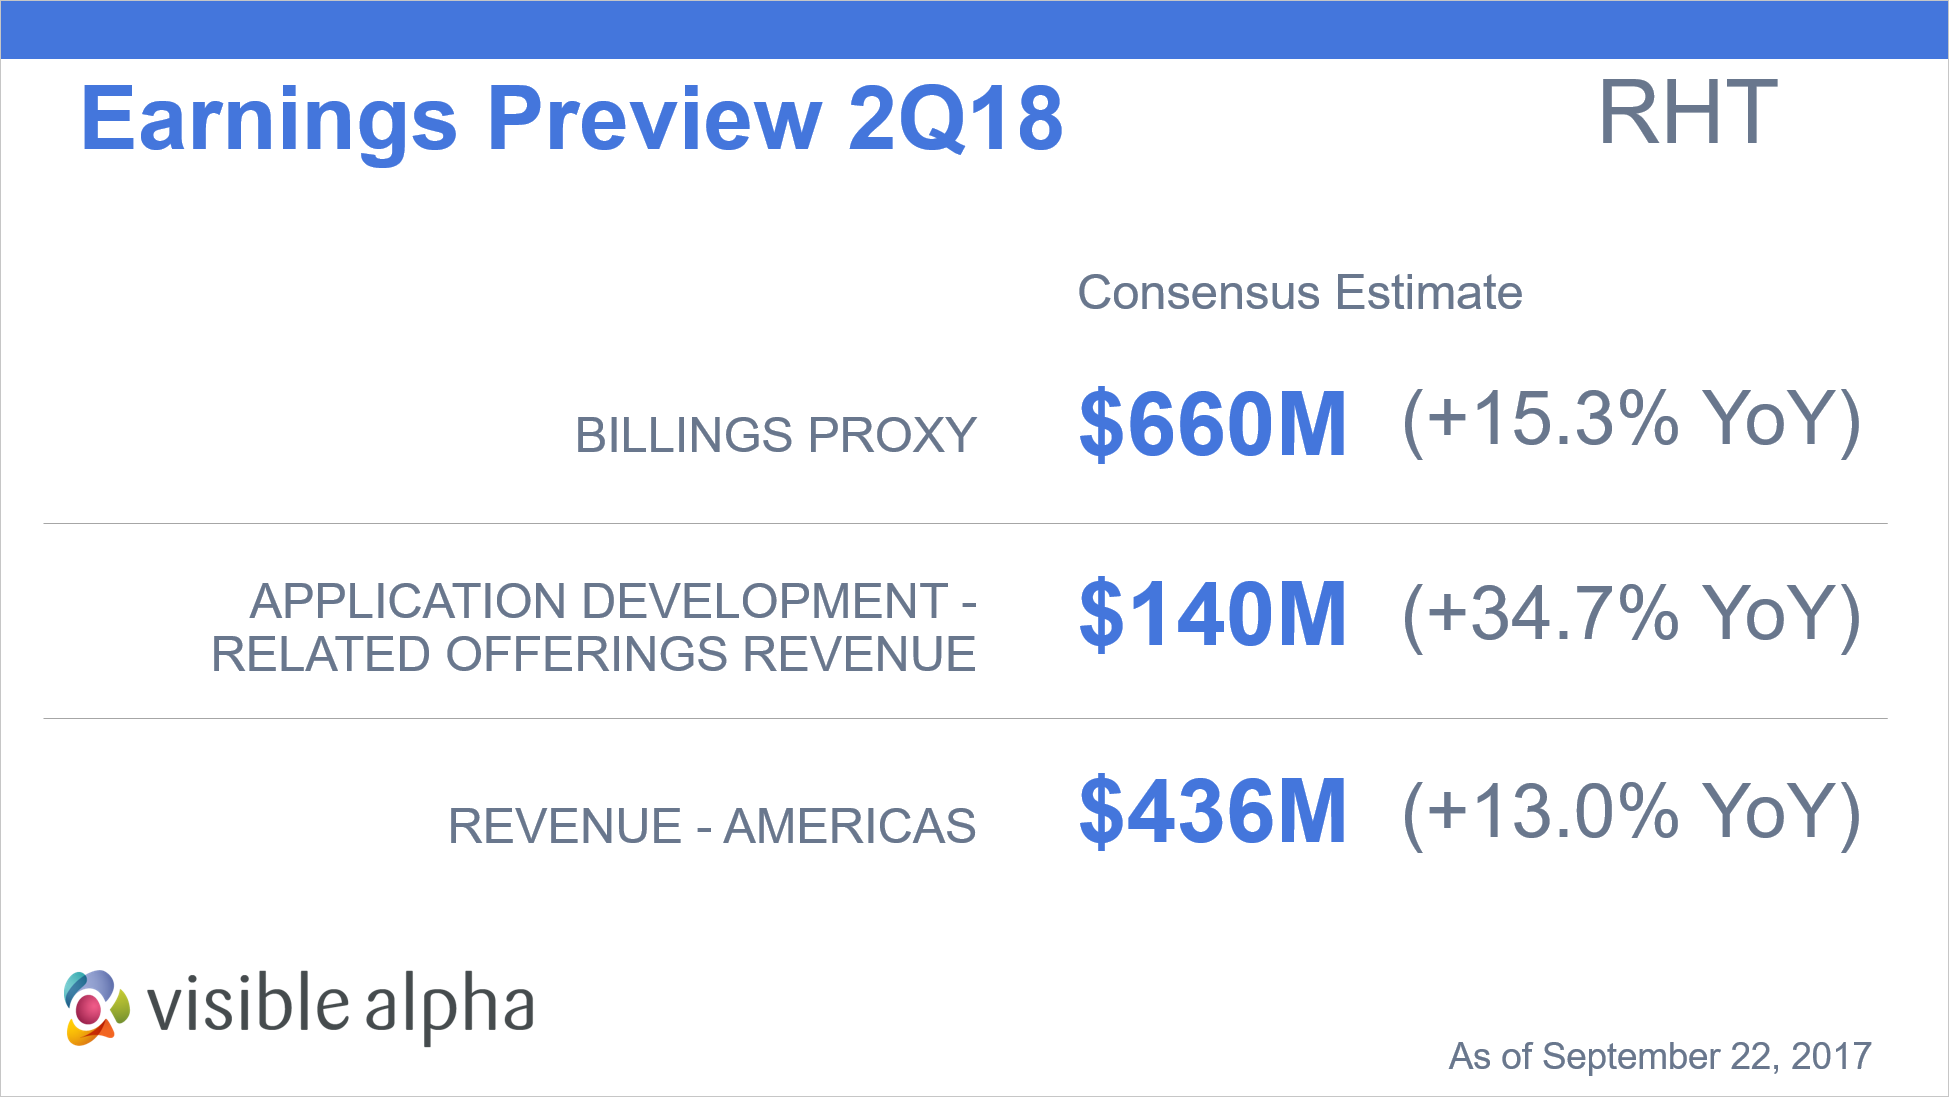 Earning Preview 2Q18 RHT